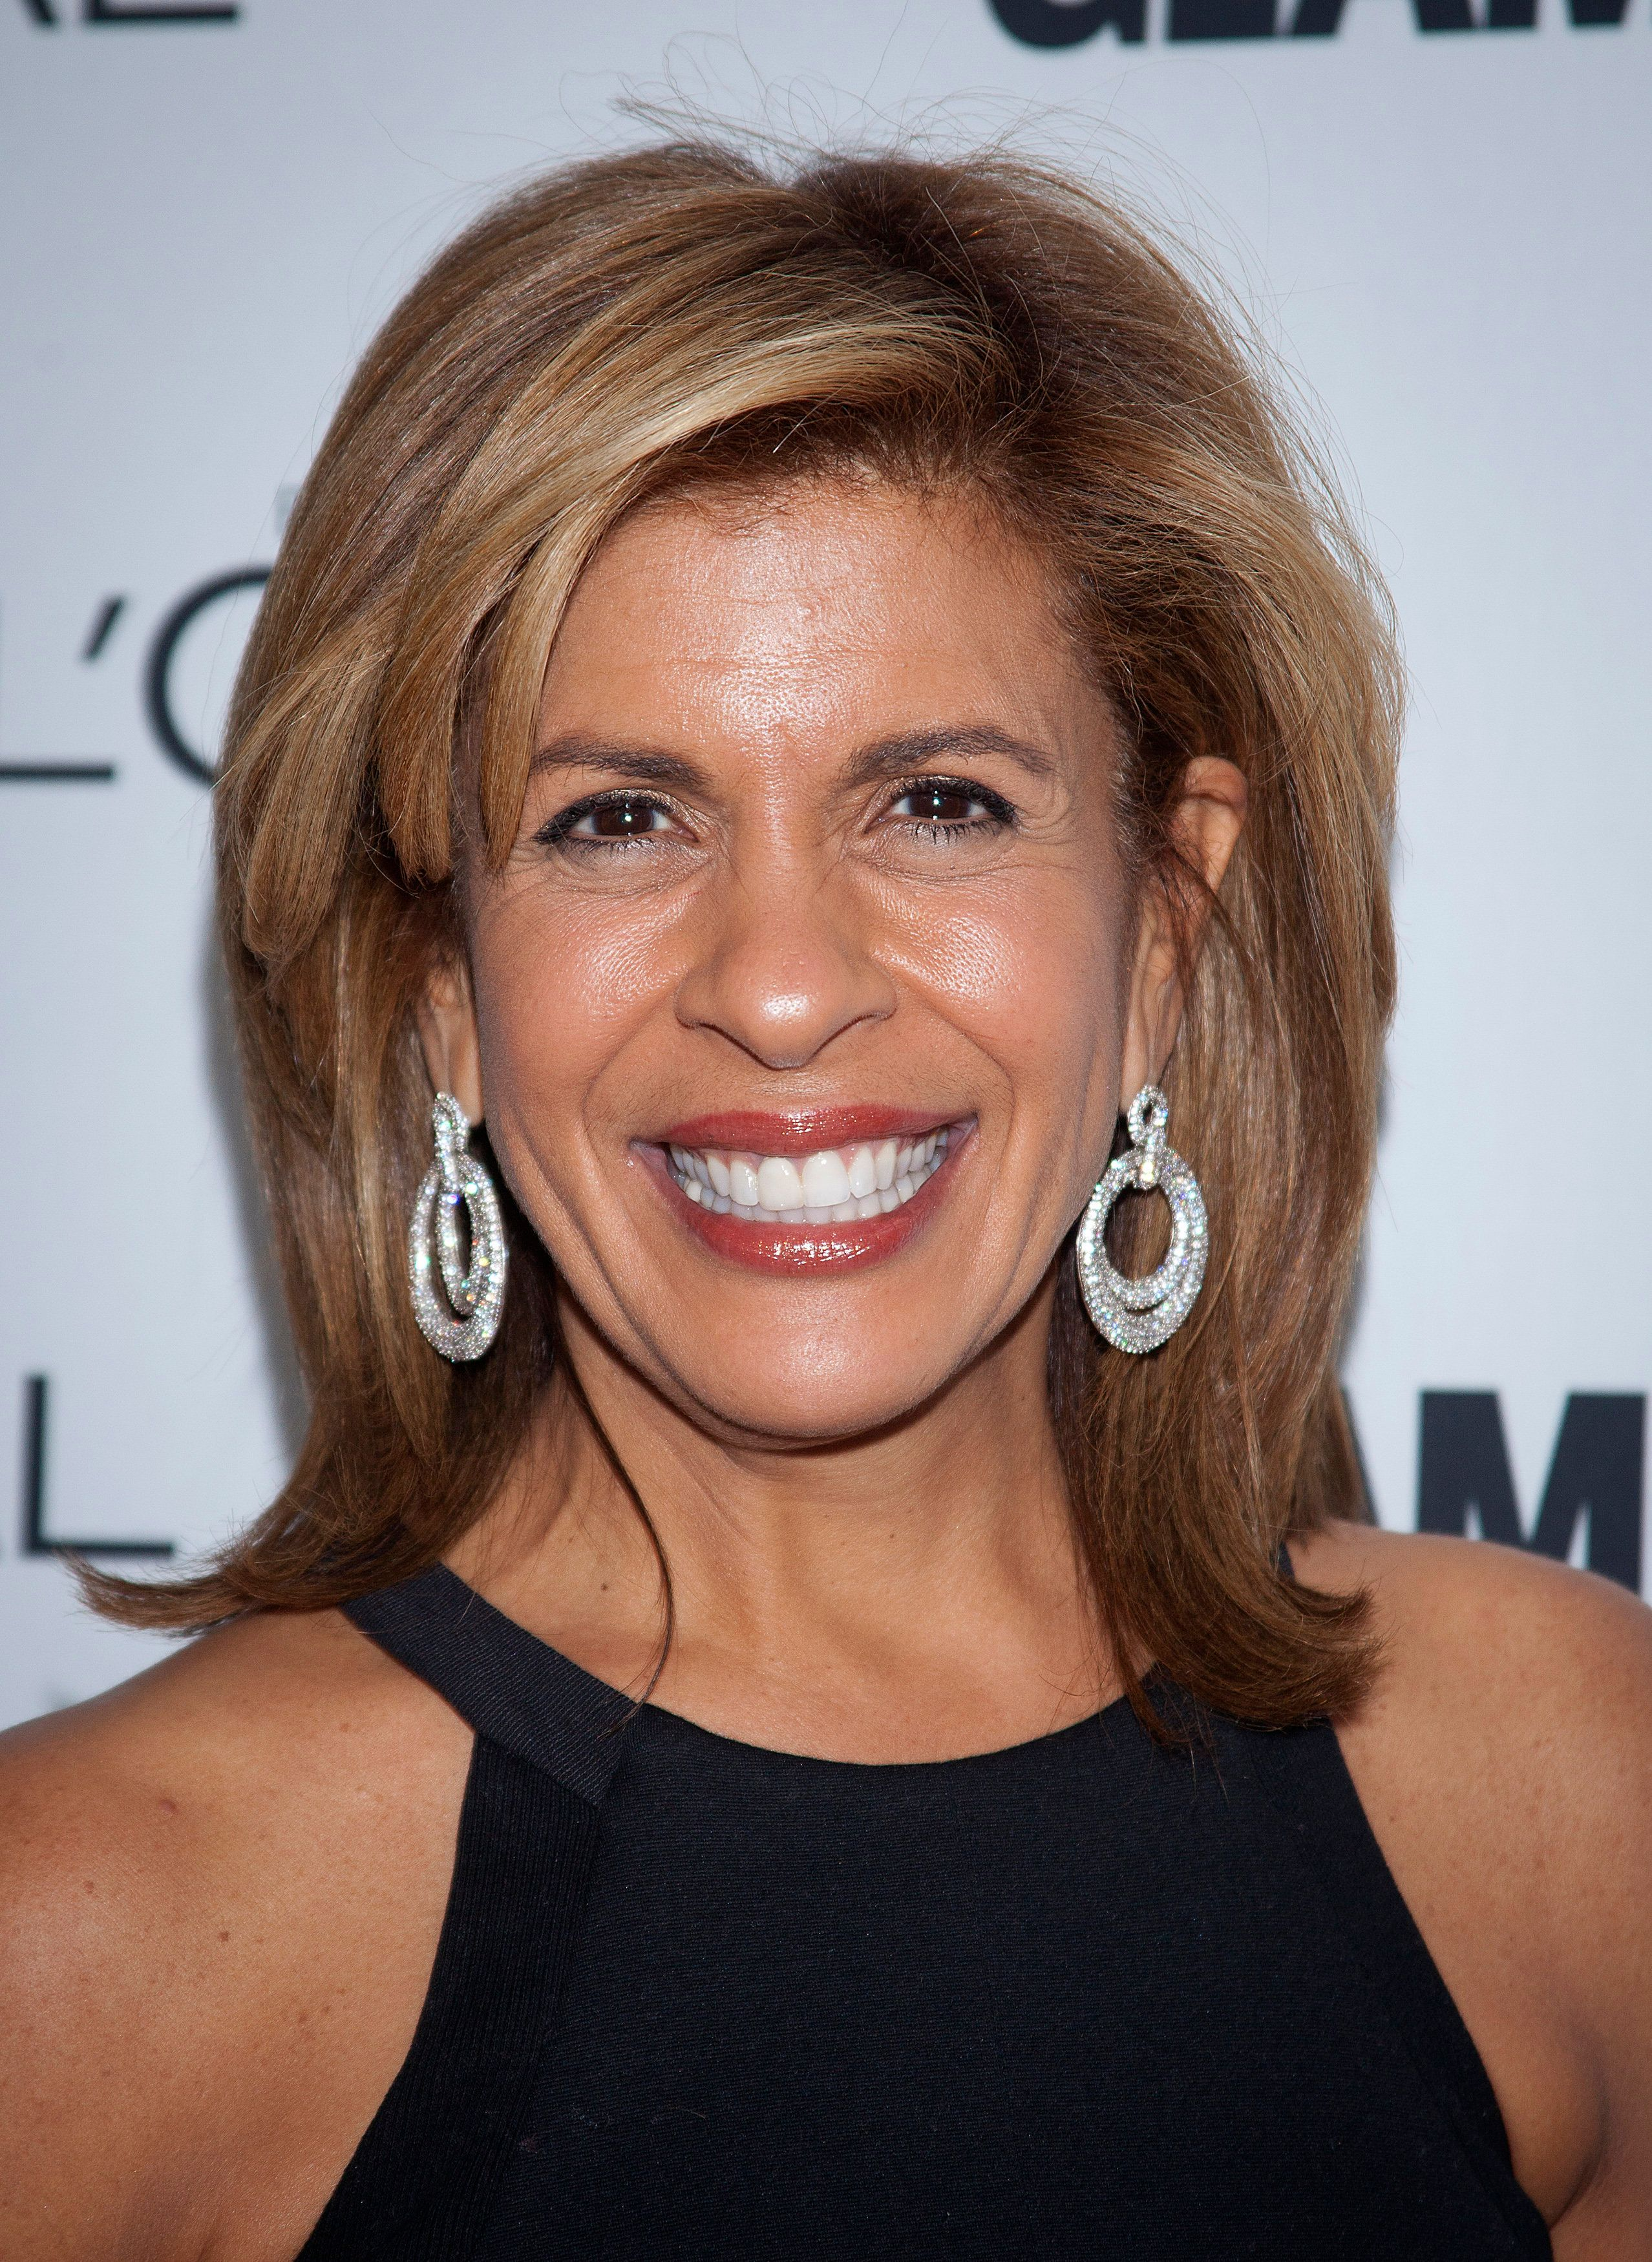 TV personality Hoda Kotb arrives for the Glamour Magazine Women of the Year event in New York, November 11, 2013.    REUTERS/Carlo Allegri(UNITED STATES - Tags: ENTERTAINMENT)